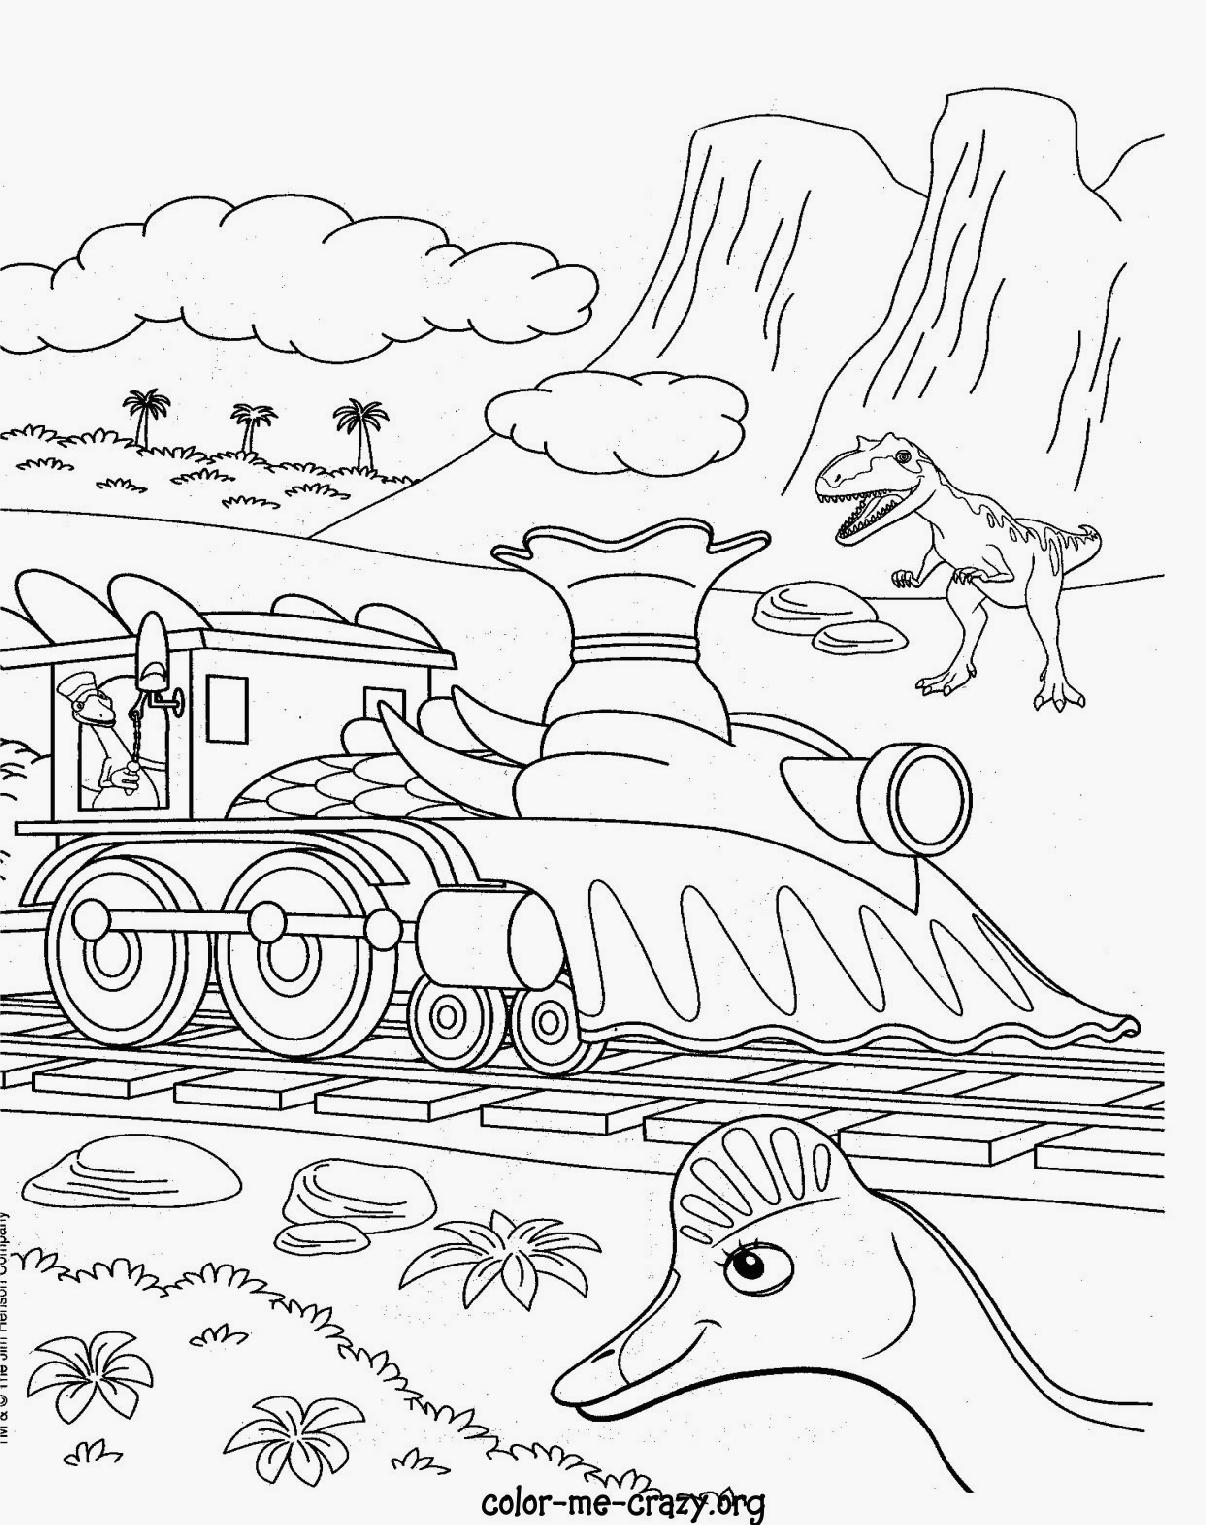 Lego Dinosaur Coloring Pages At Getcolorings